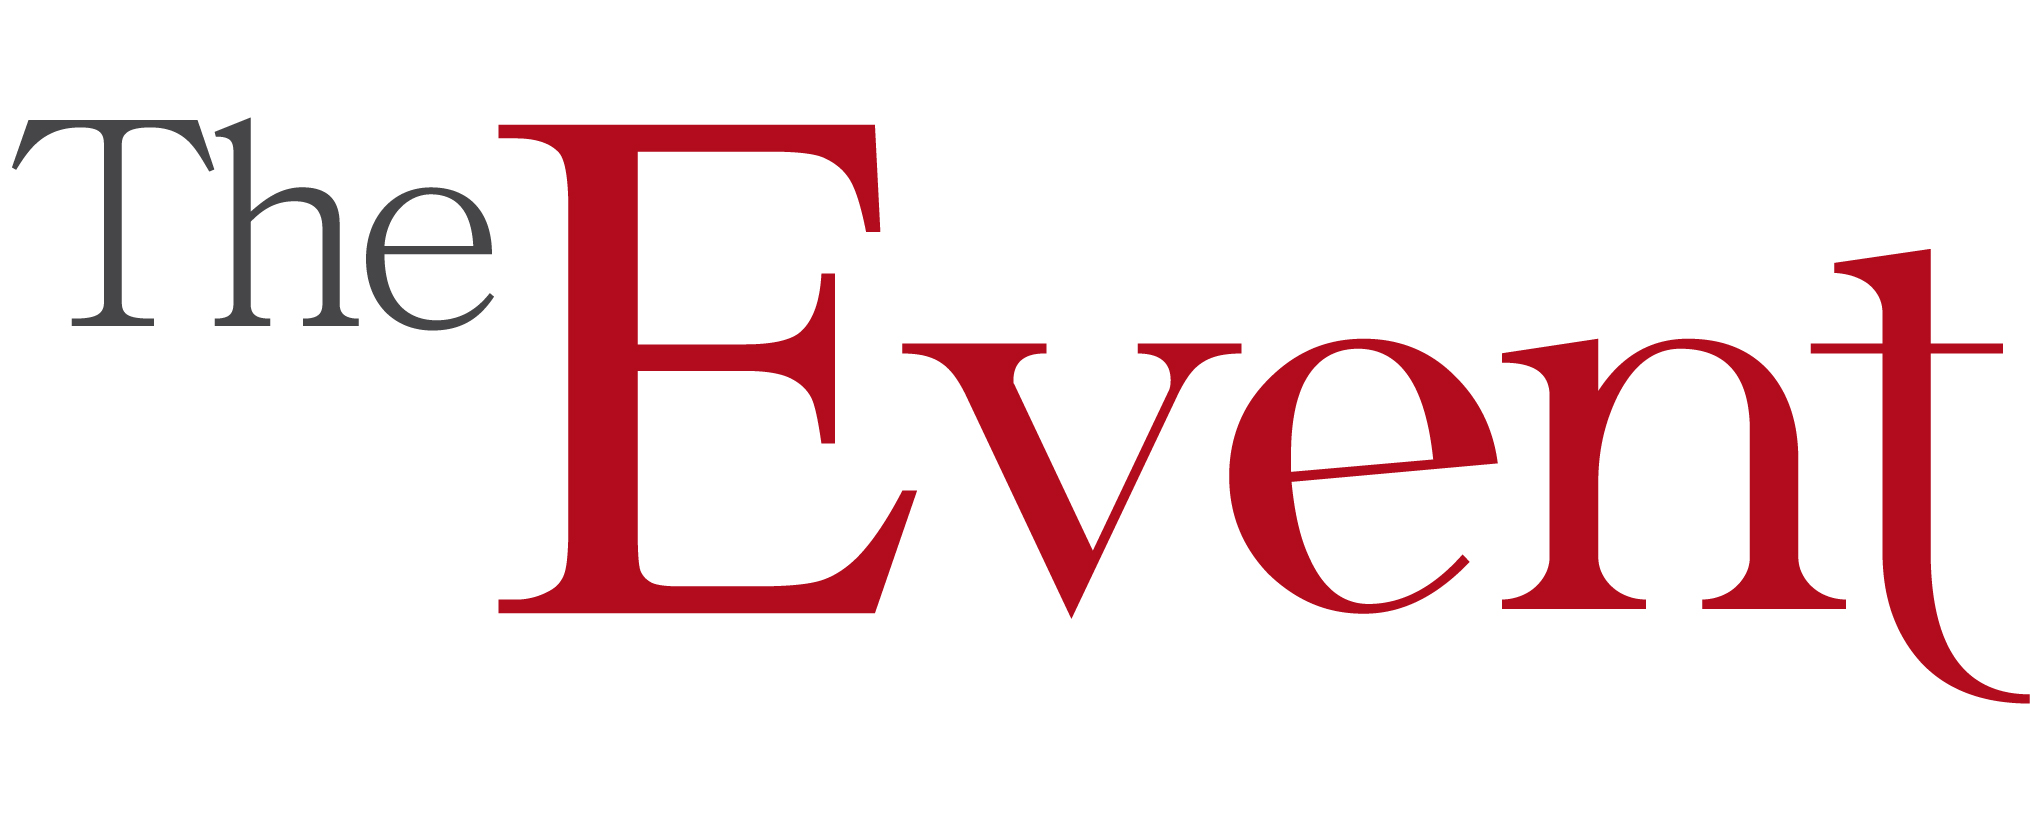 the-event-logo.jpg